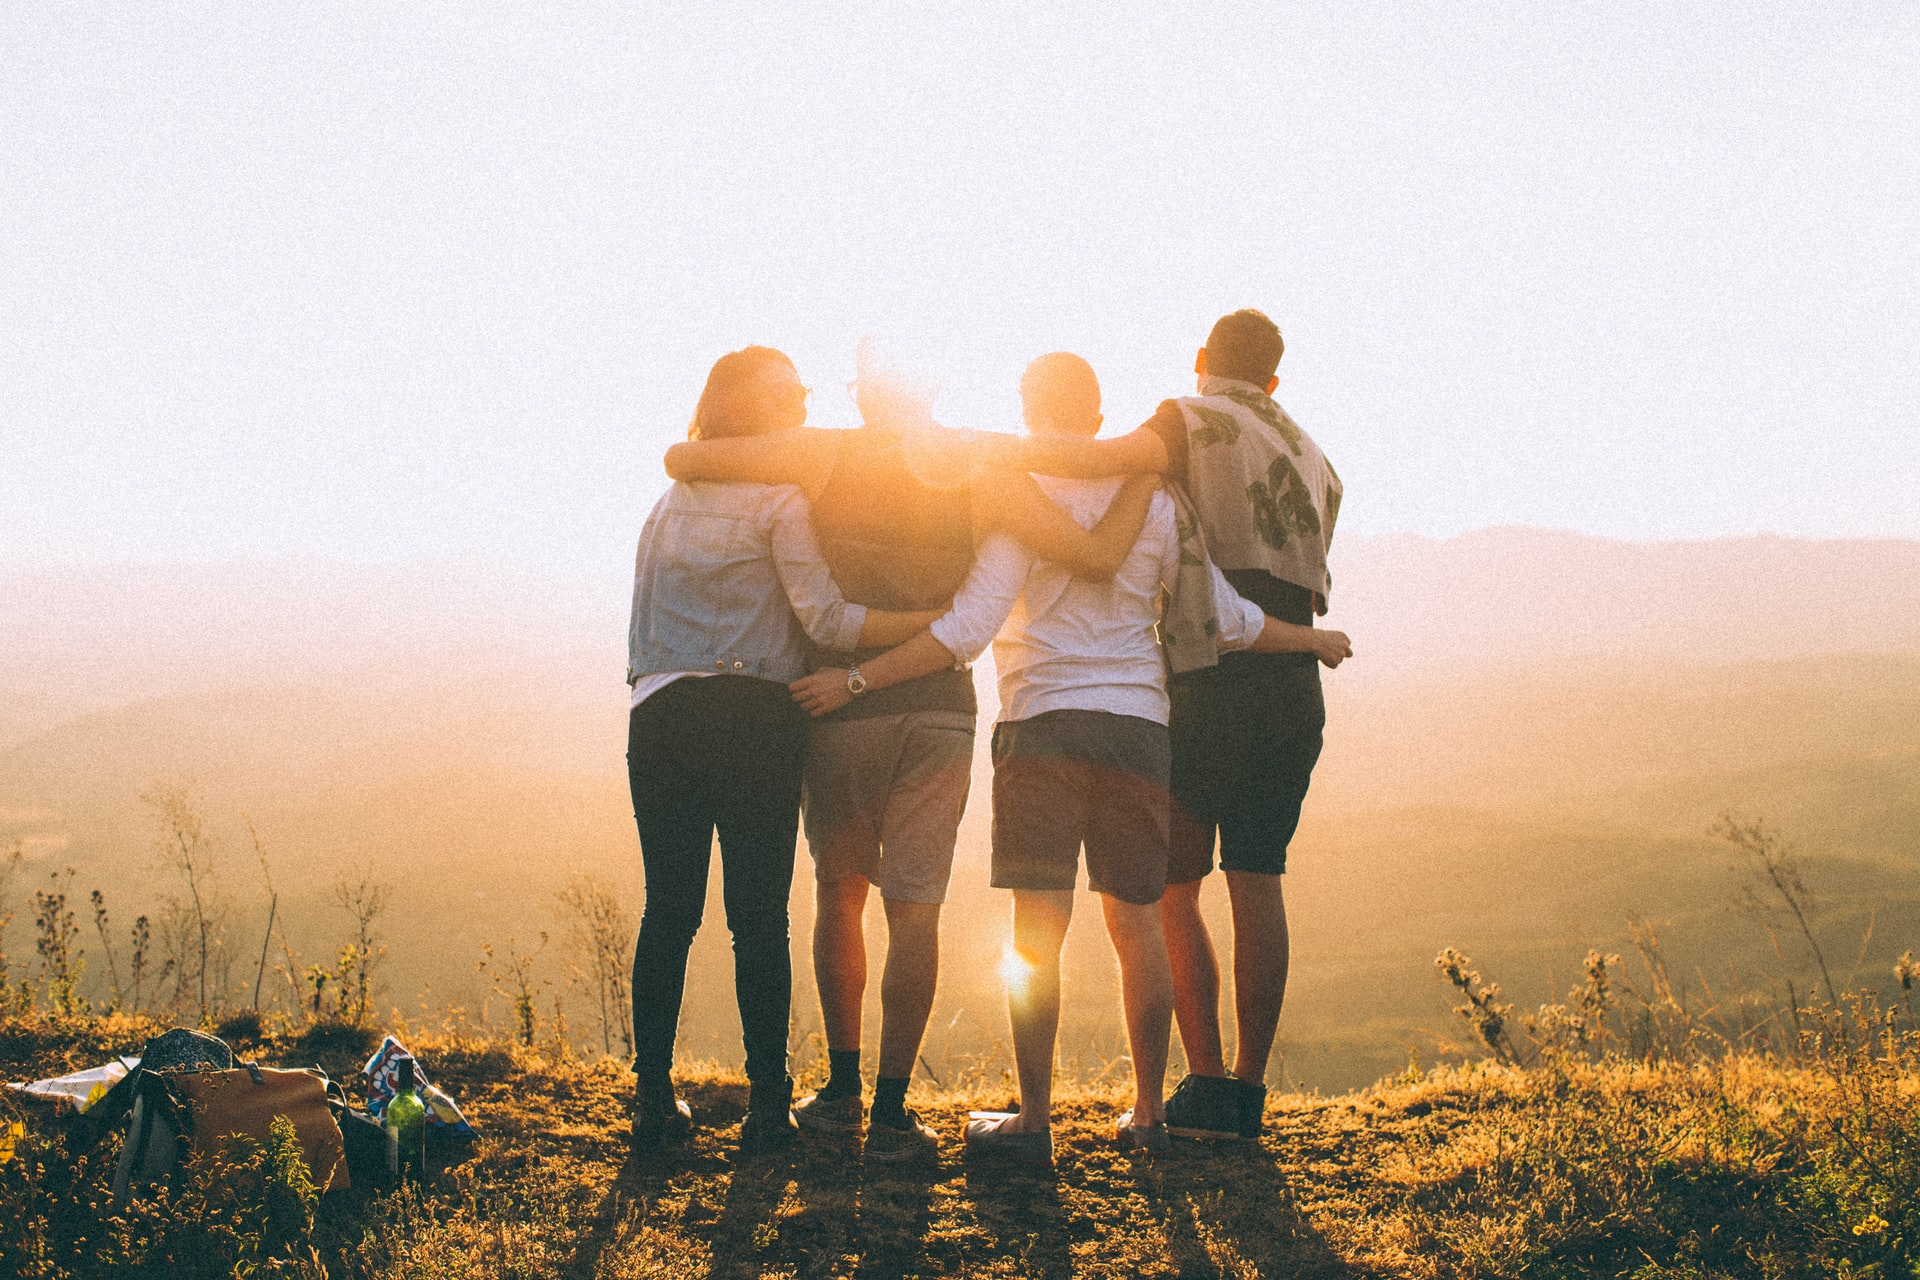 Group Travel Trips to Take in Your 20's